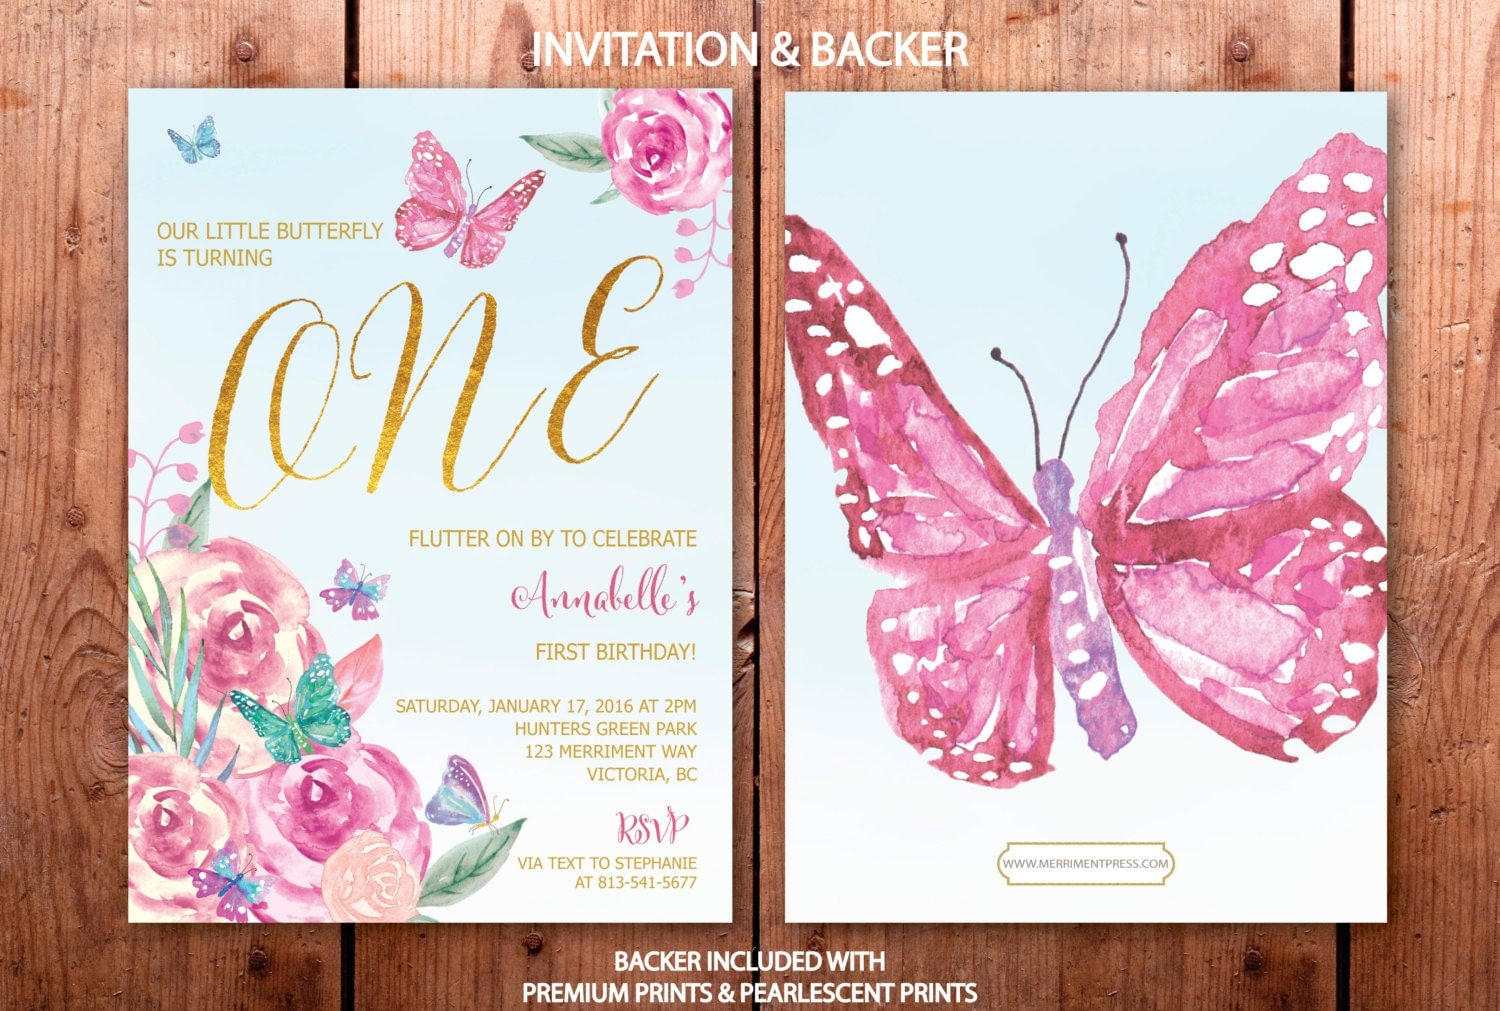 Butterfly First Birthday Invitation Butterflies St Birthday - Butterfly birthday invitation images